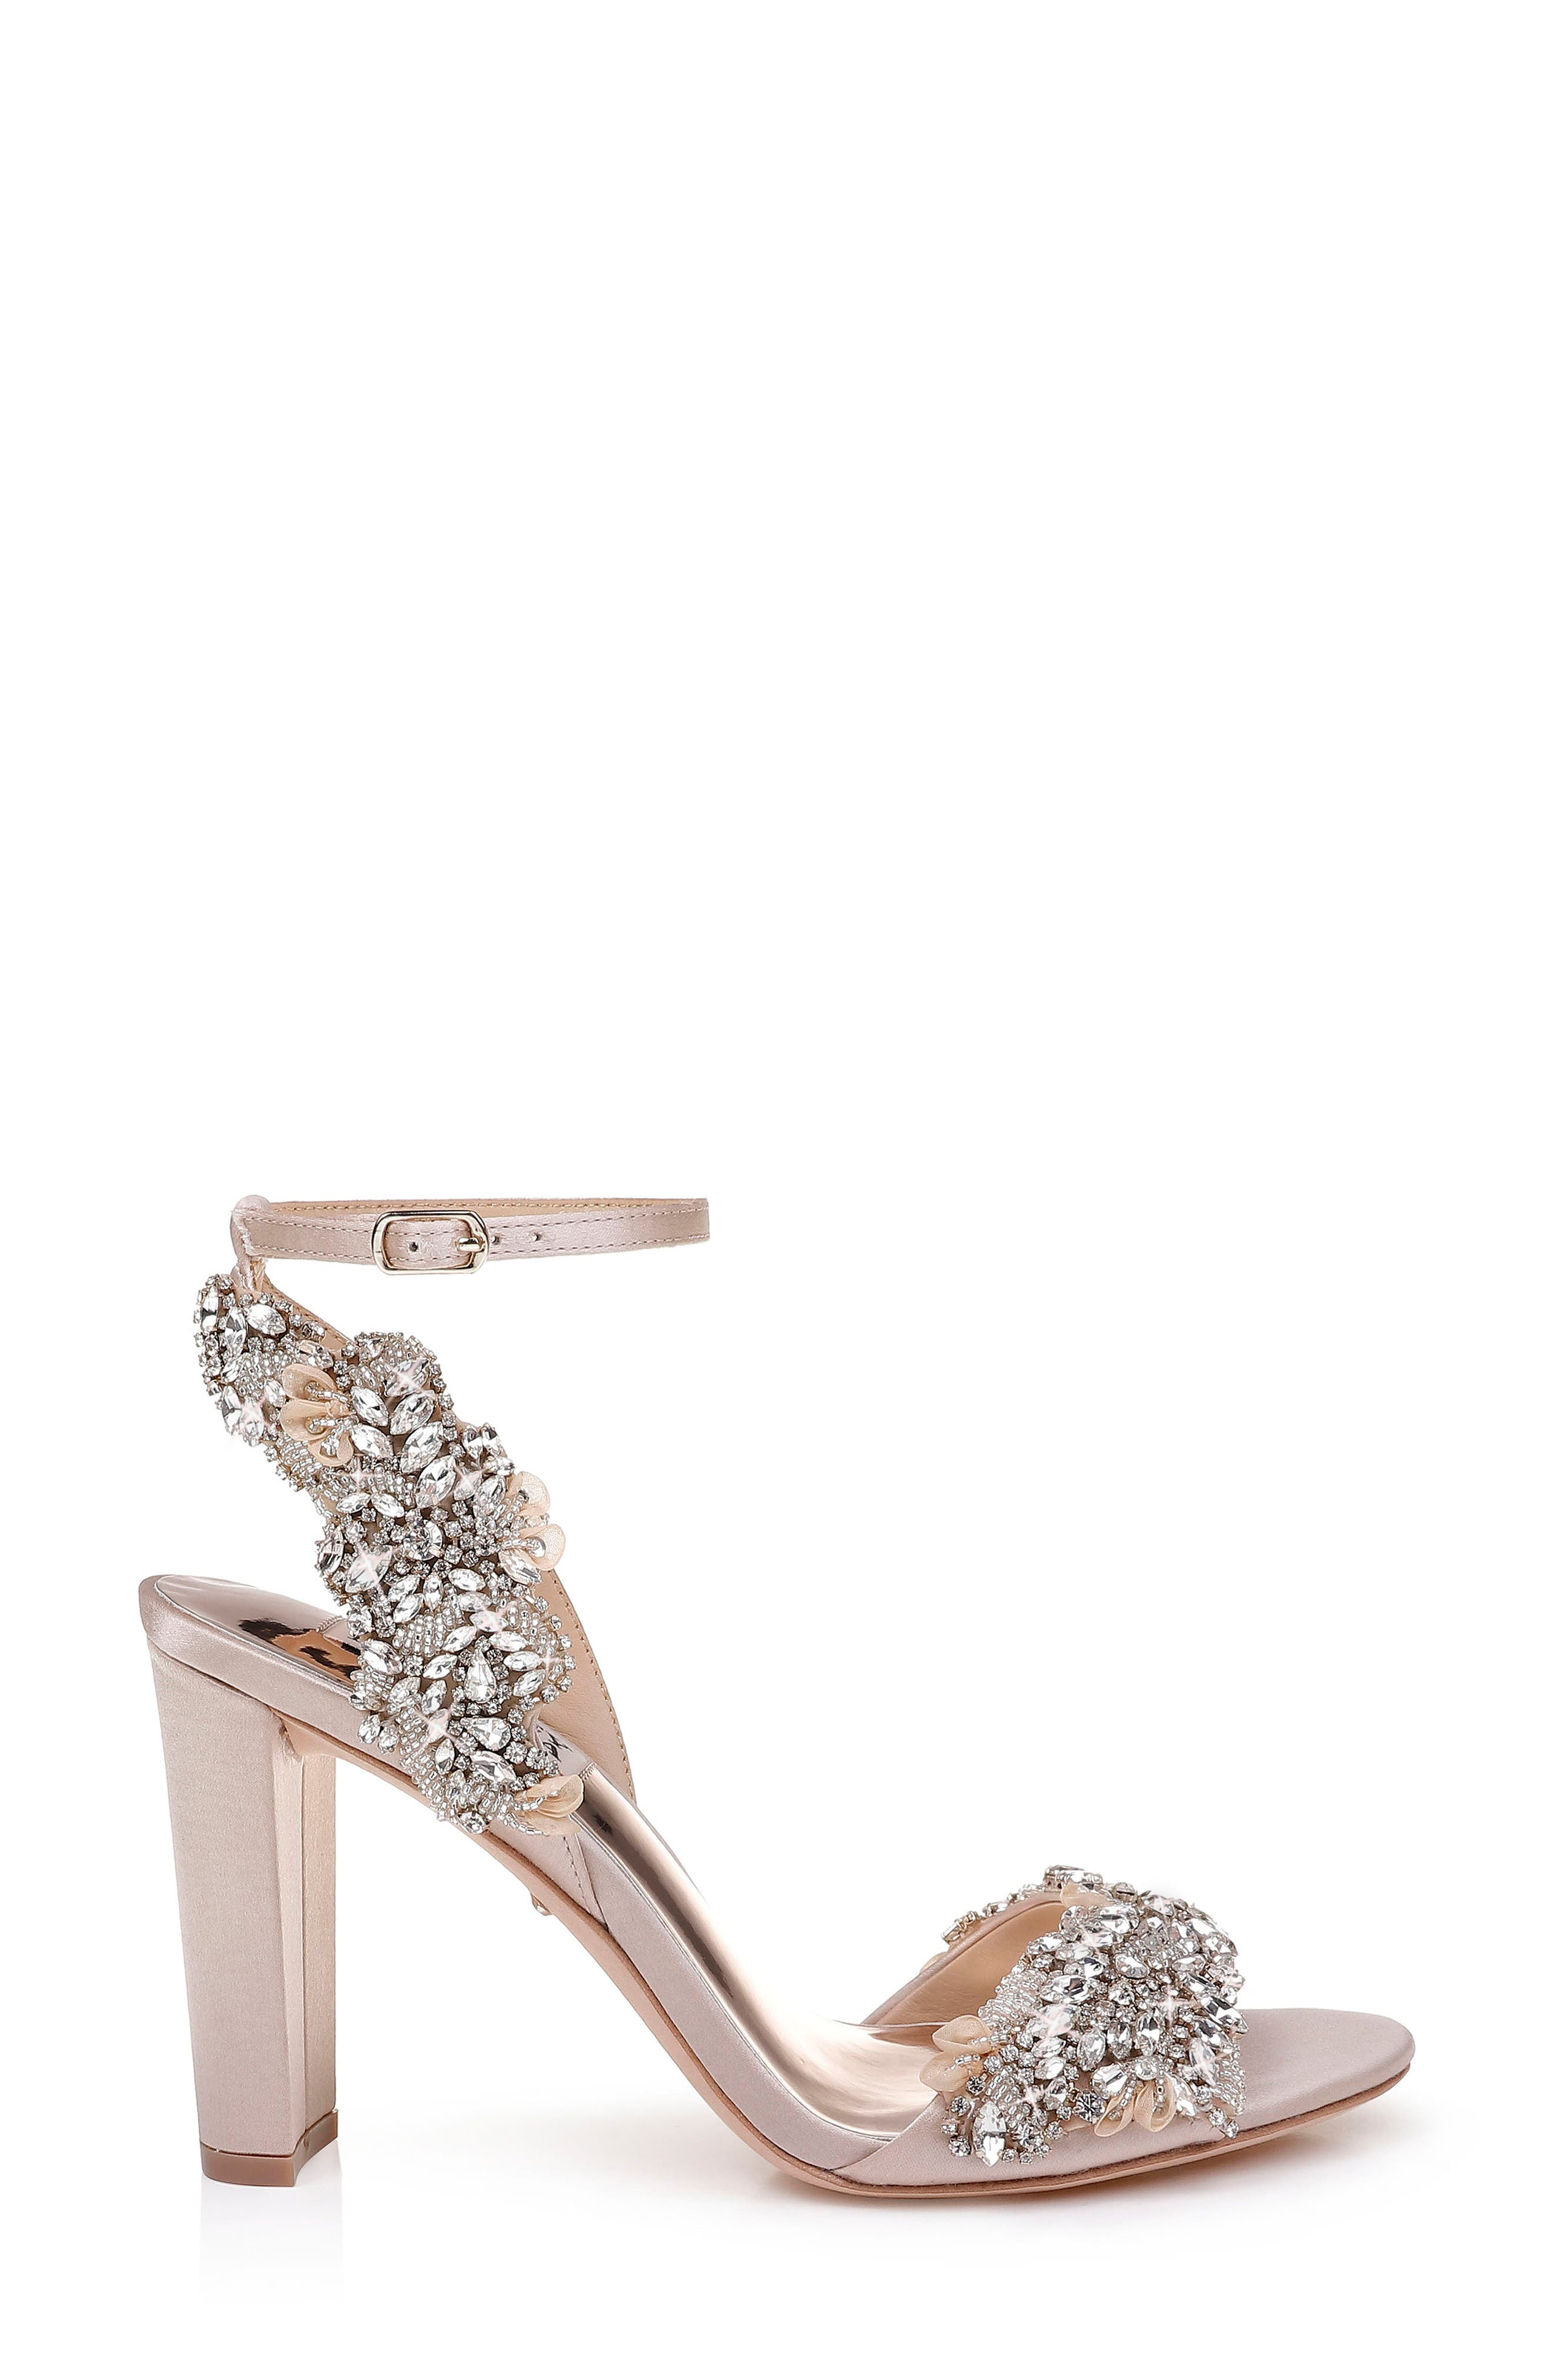 Badgley Mischka Libby Ankle Strap Sandal,                             Alternate thumbnail 3, color,                             NUDE SATIN